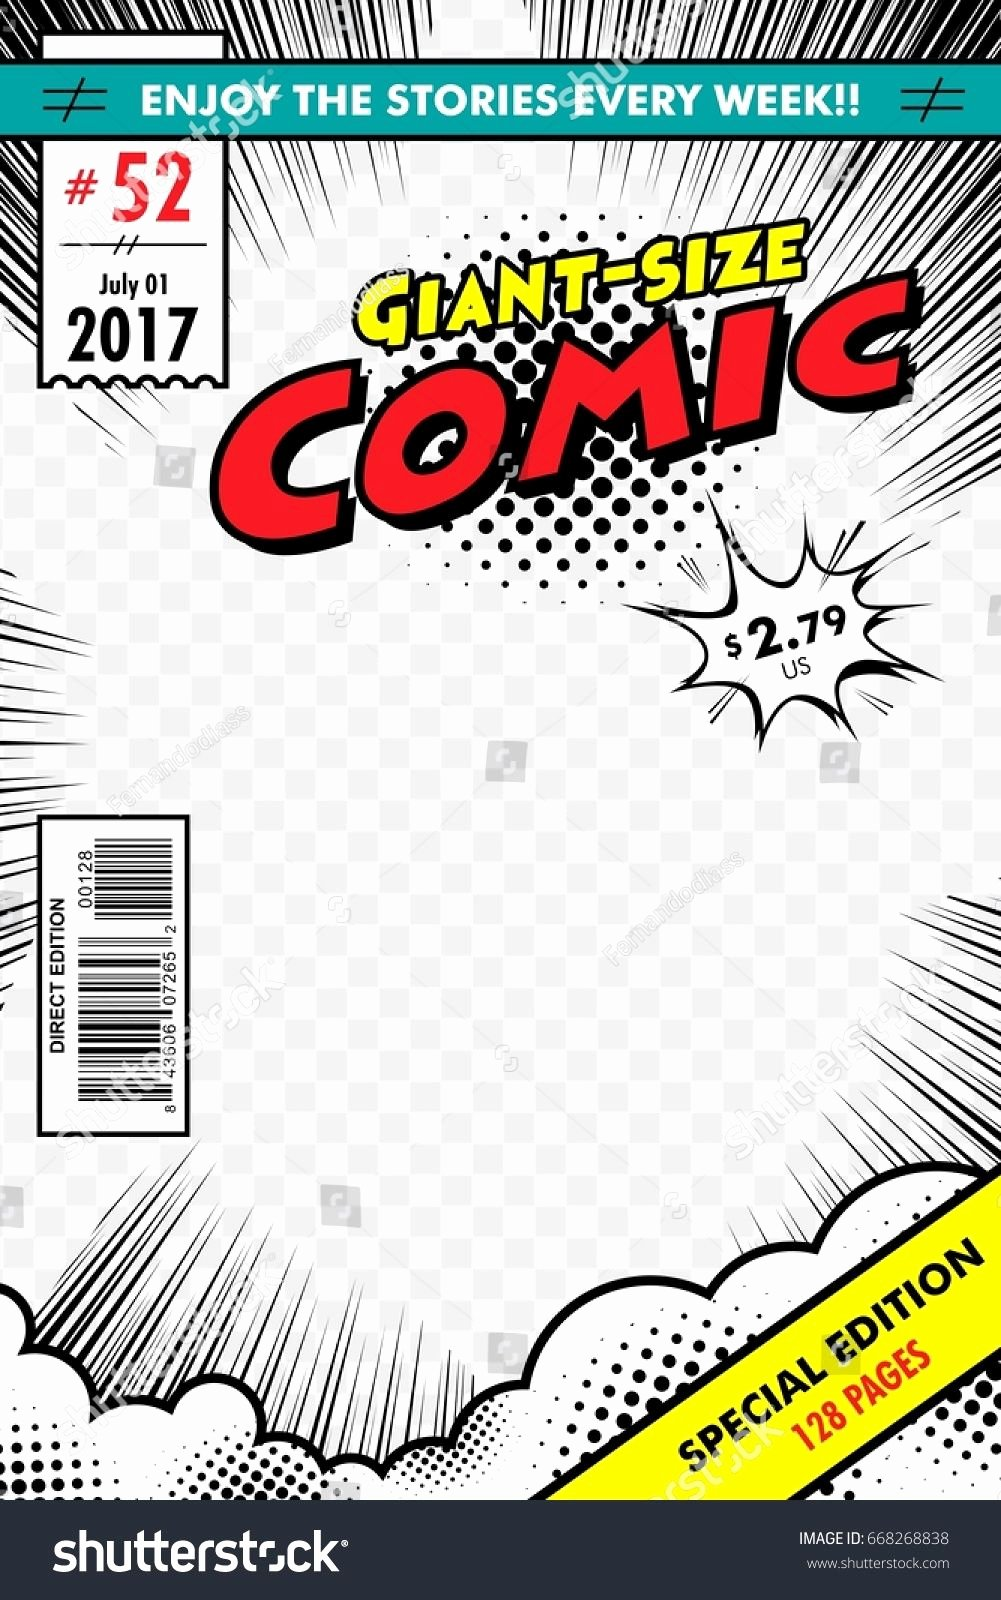 Blank Comic Book Cover Template Fresh Ic Book Cover Giant Size with Transparent Background